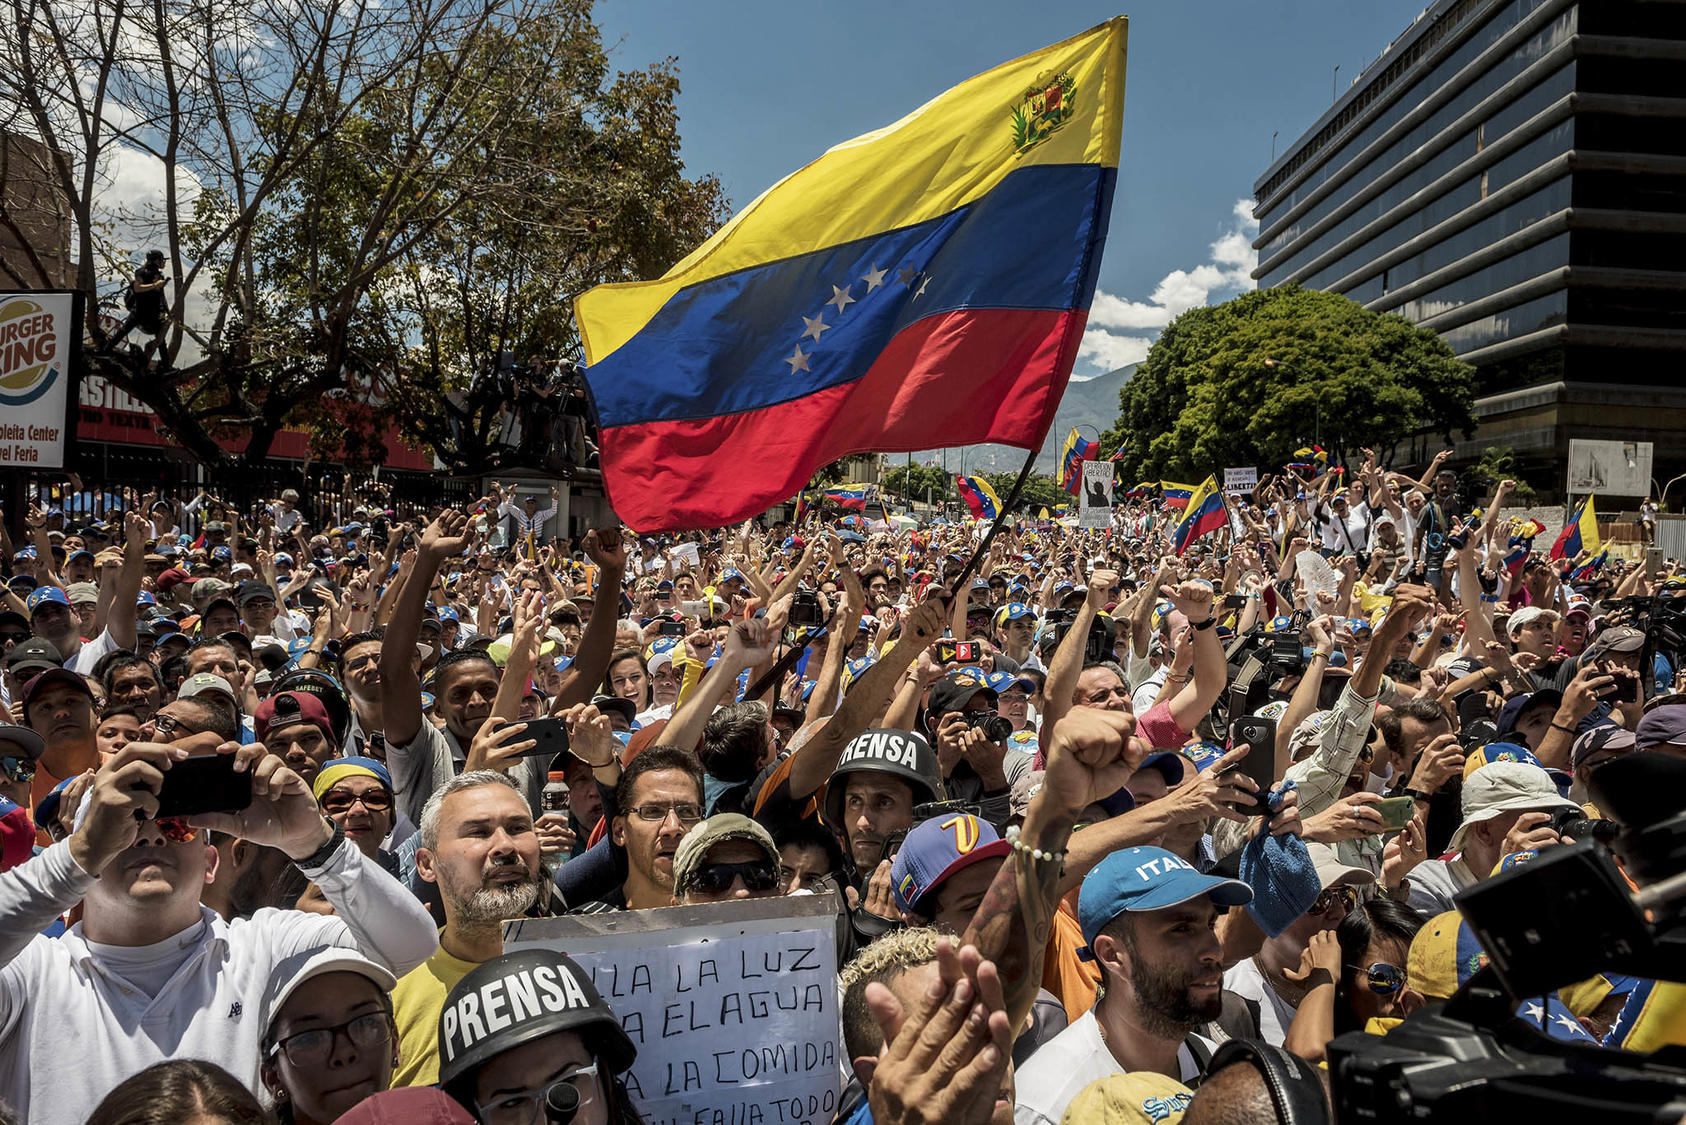 Venezuelans, most of them young, rally in April to demand a democratic transition for their country. Venezuela has a history of political protest movements led by youth. (Meridith Kohut/The New York Times)